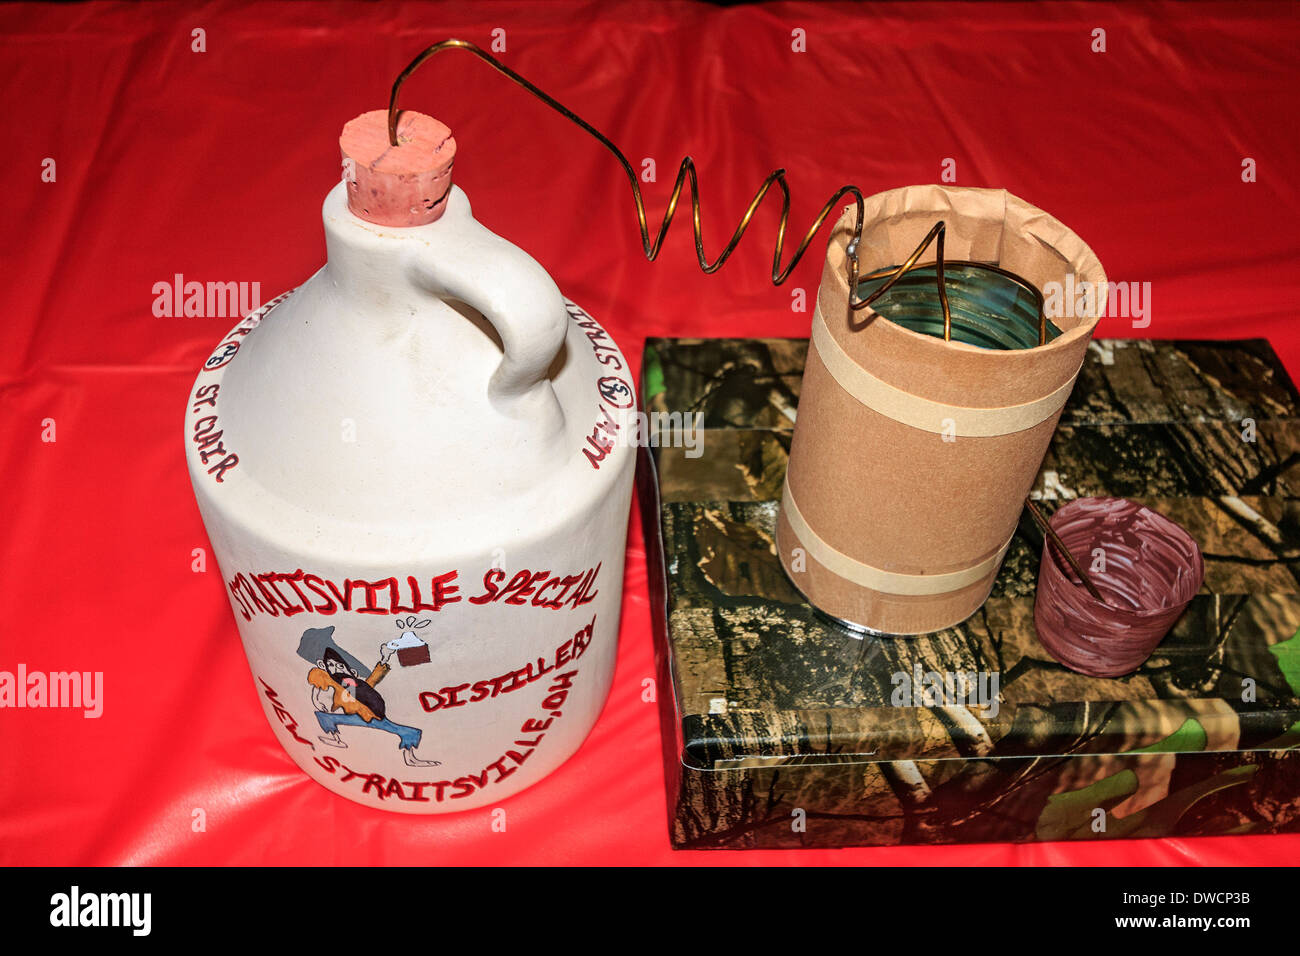 Decorative moonshine jug along with barrel and pail at Straitsville Special Distillery in New Straitsville, Ohio, USA. - Stock Image